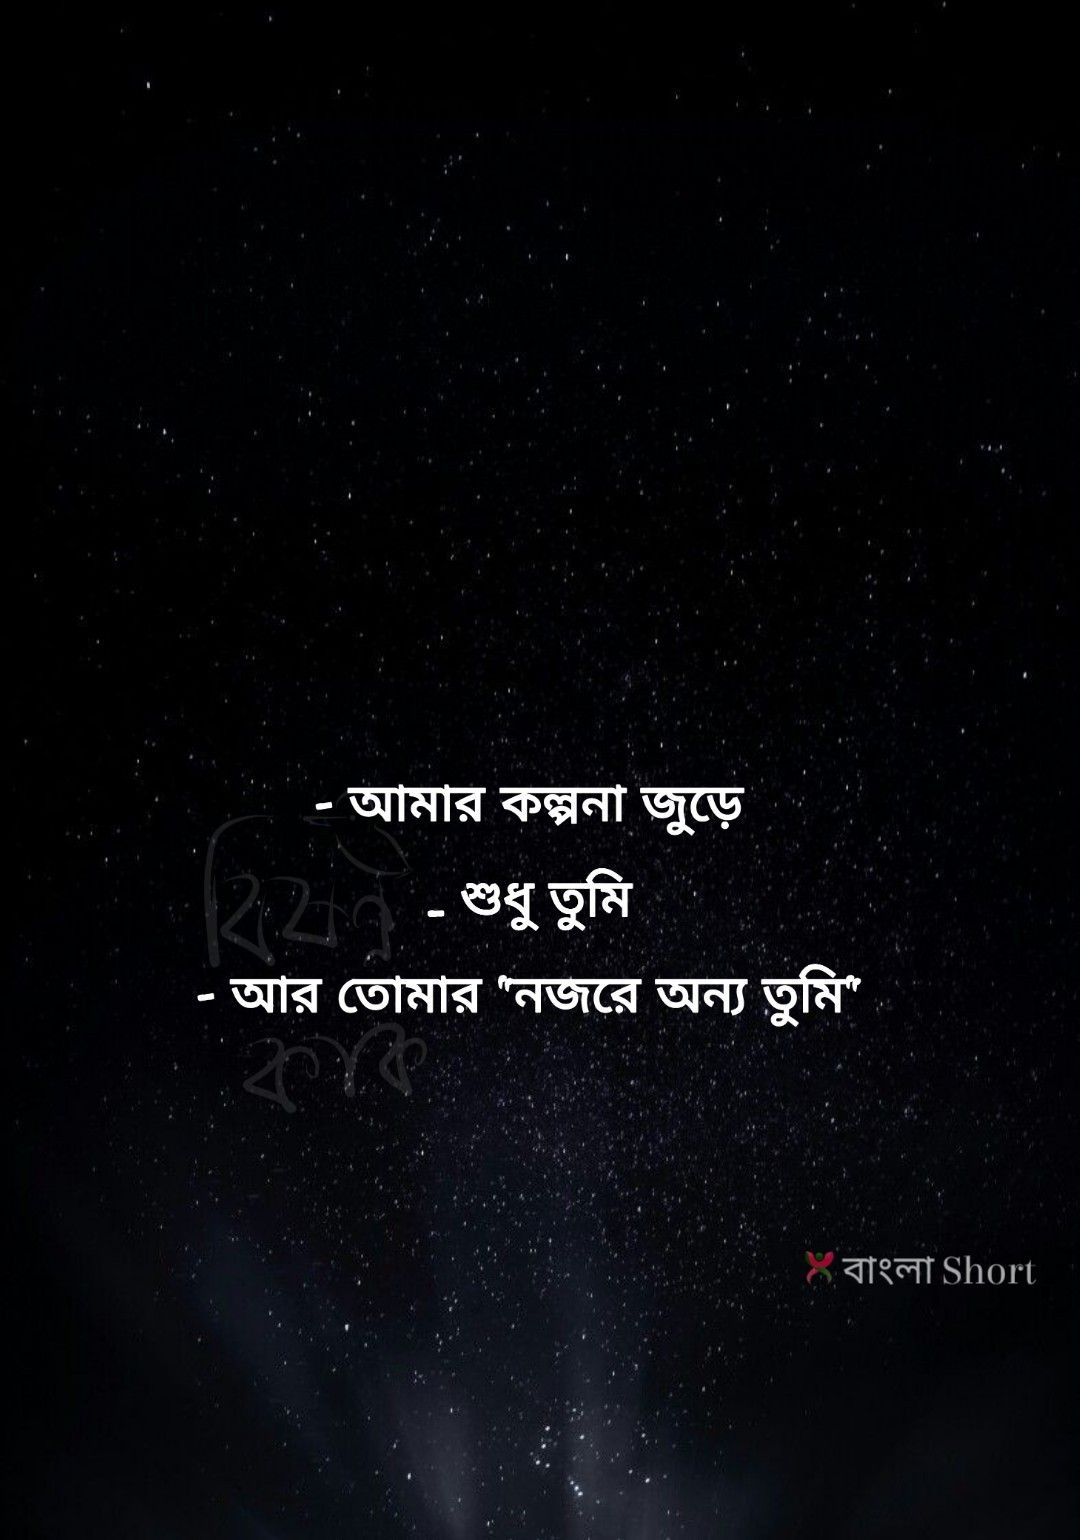 Pin by Jariya Bagum on Bangla Short Bangla love quotes